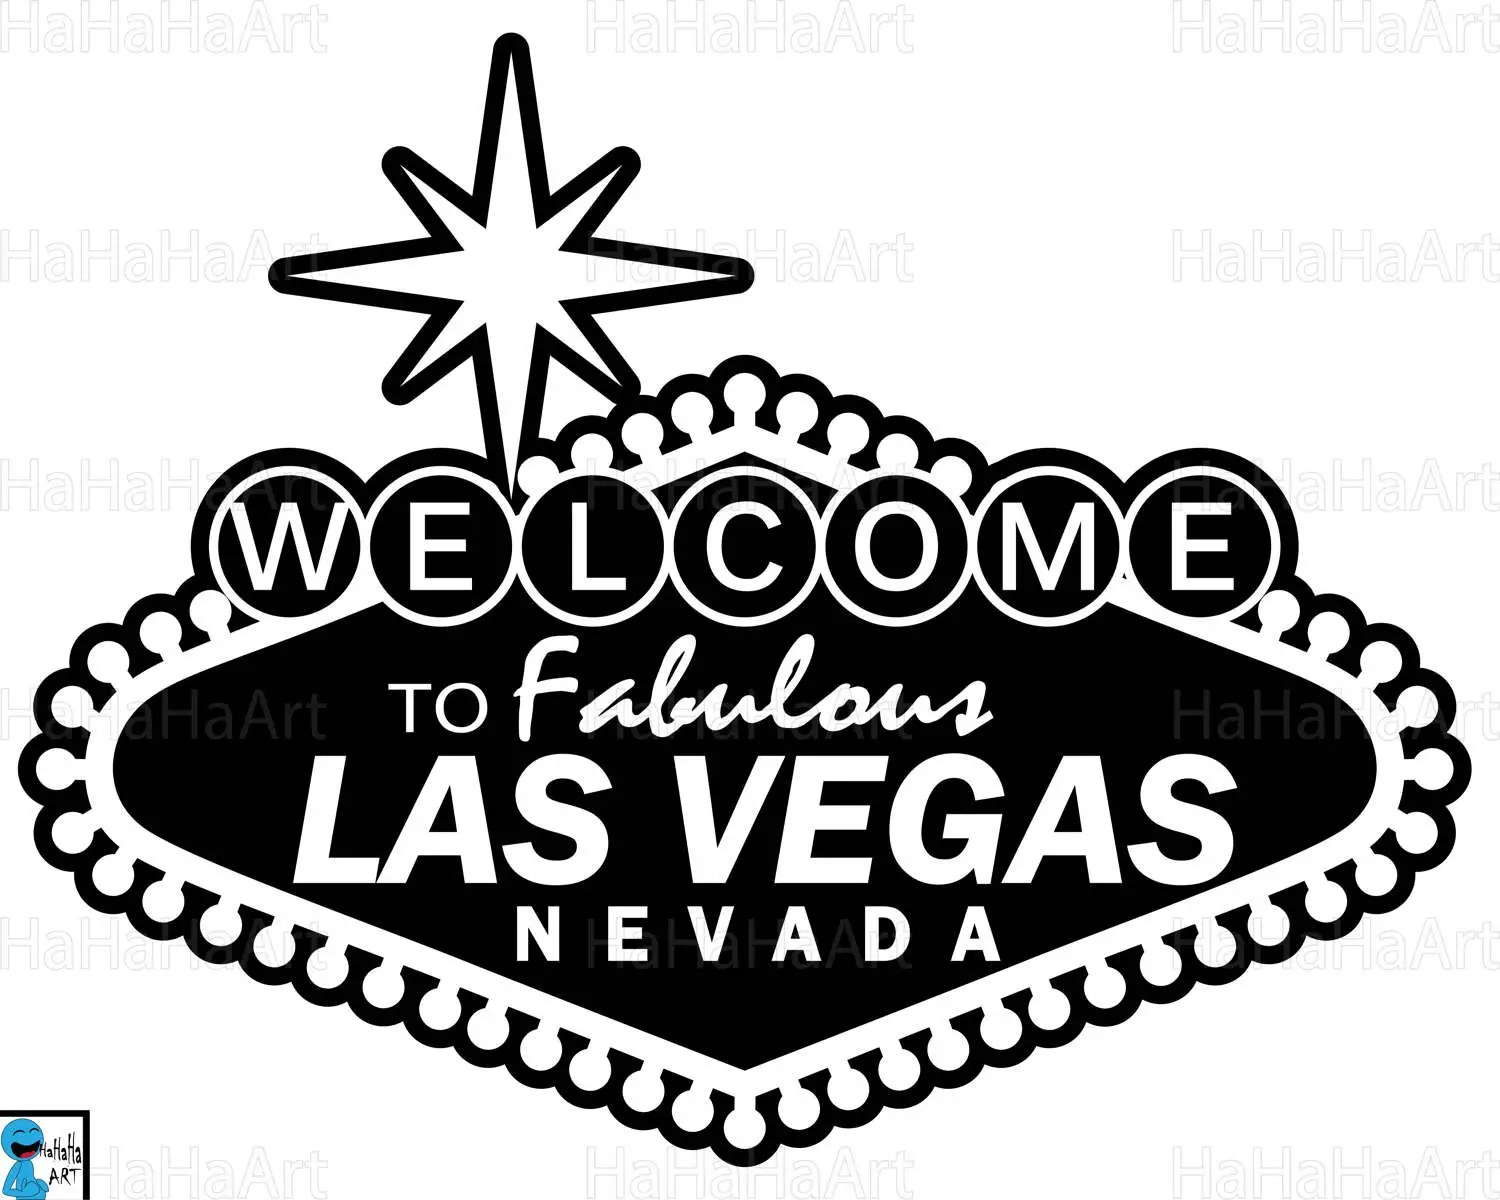 Las Vegas sign Clipart / Cutting Files Svg Png Jpg Dxf